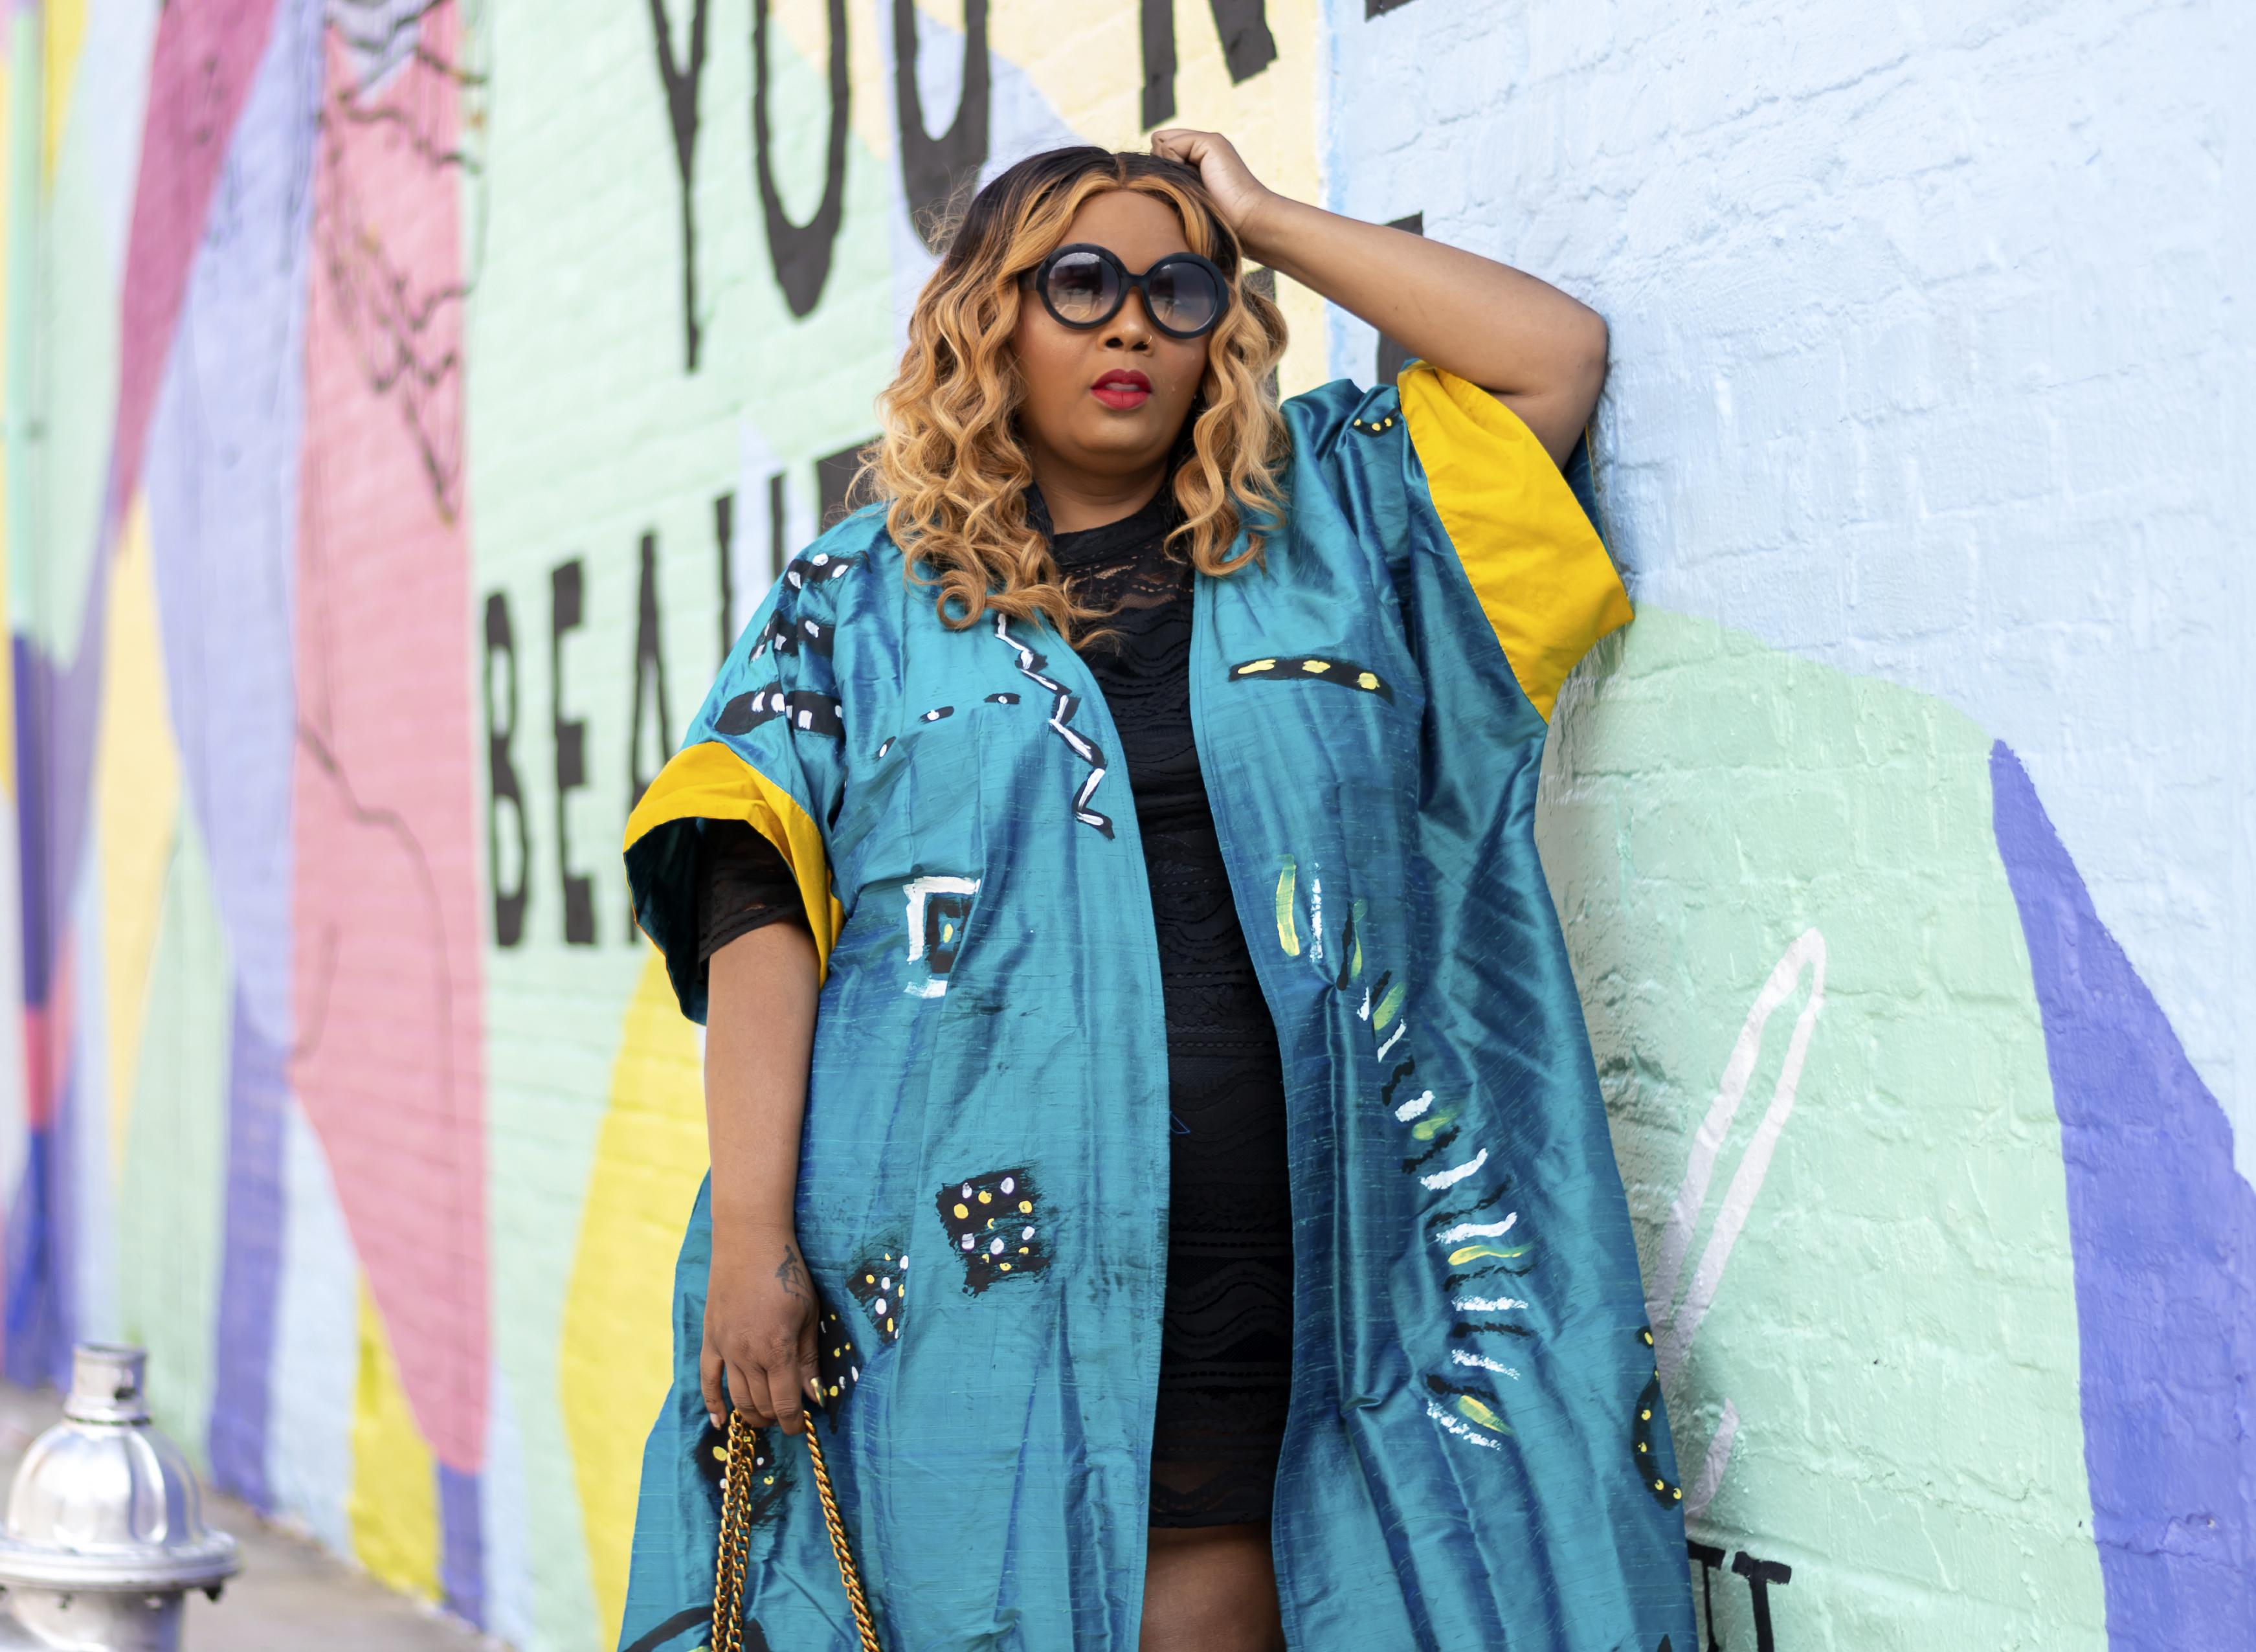 Fashion and lifestyle blogger Maui Bigelow. Bigelow, a former teacher in Albany, Georgia, created Phatgirlfresh.com, with 67,500 monthly unique visitors to her site and nearly 40,000 followers on Instagram.